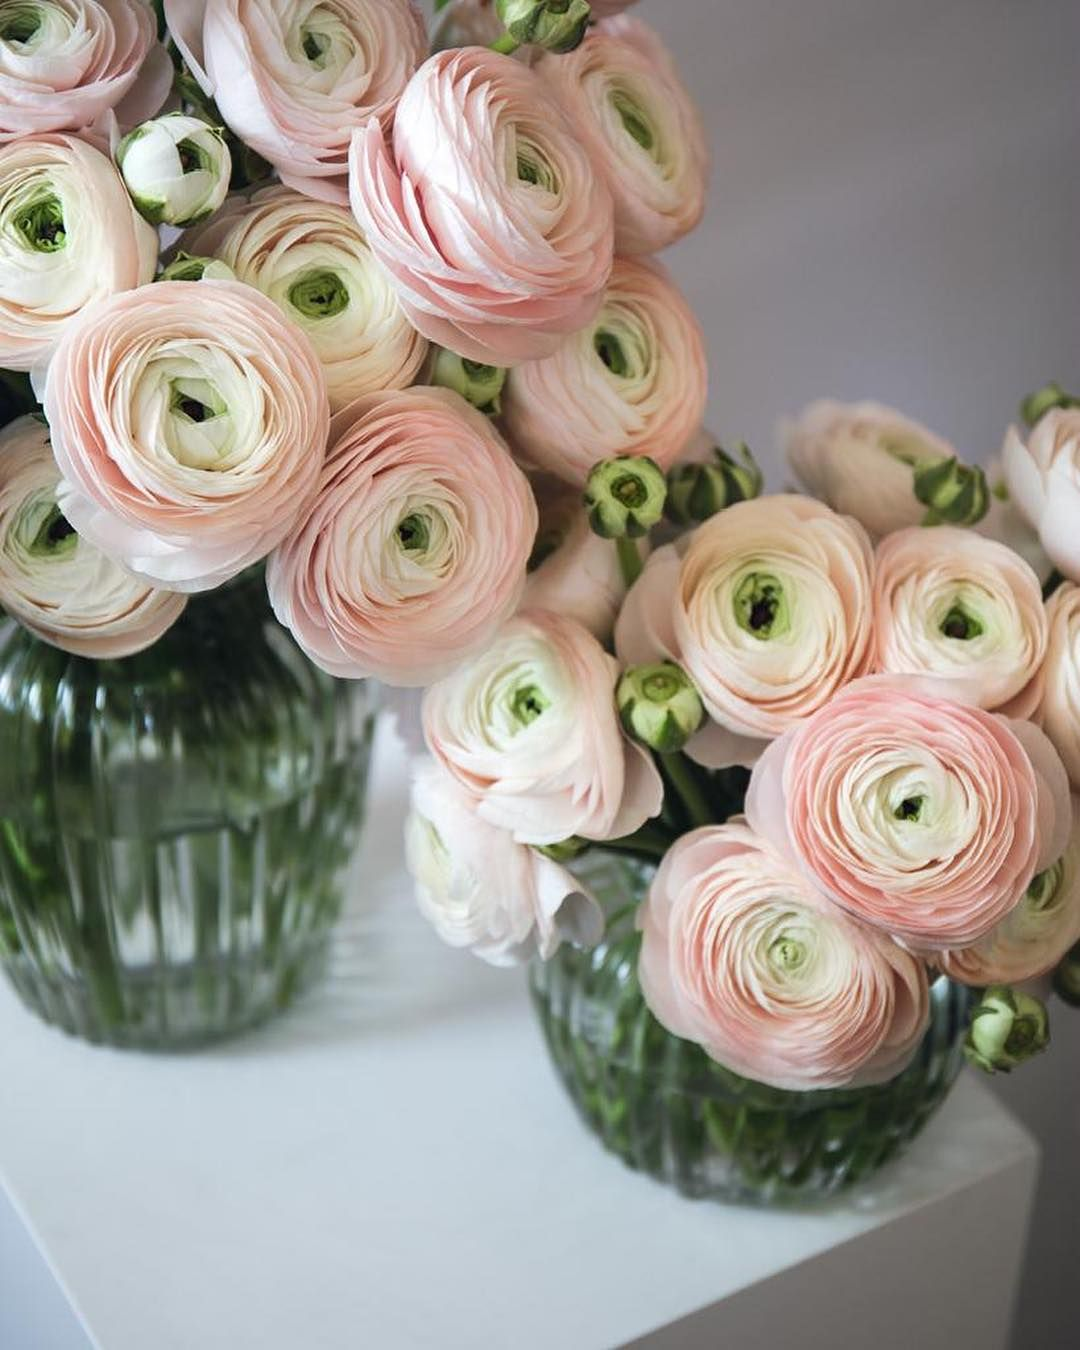 Ballet Slippers Ranunculus Serving This Week S Sundaysimplicity Arranged Loosely In The Elegant Medium Windsor Vase Tap The Image To Shop T Decoration Fleurs